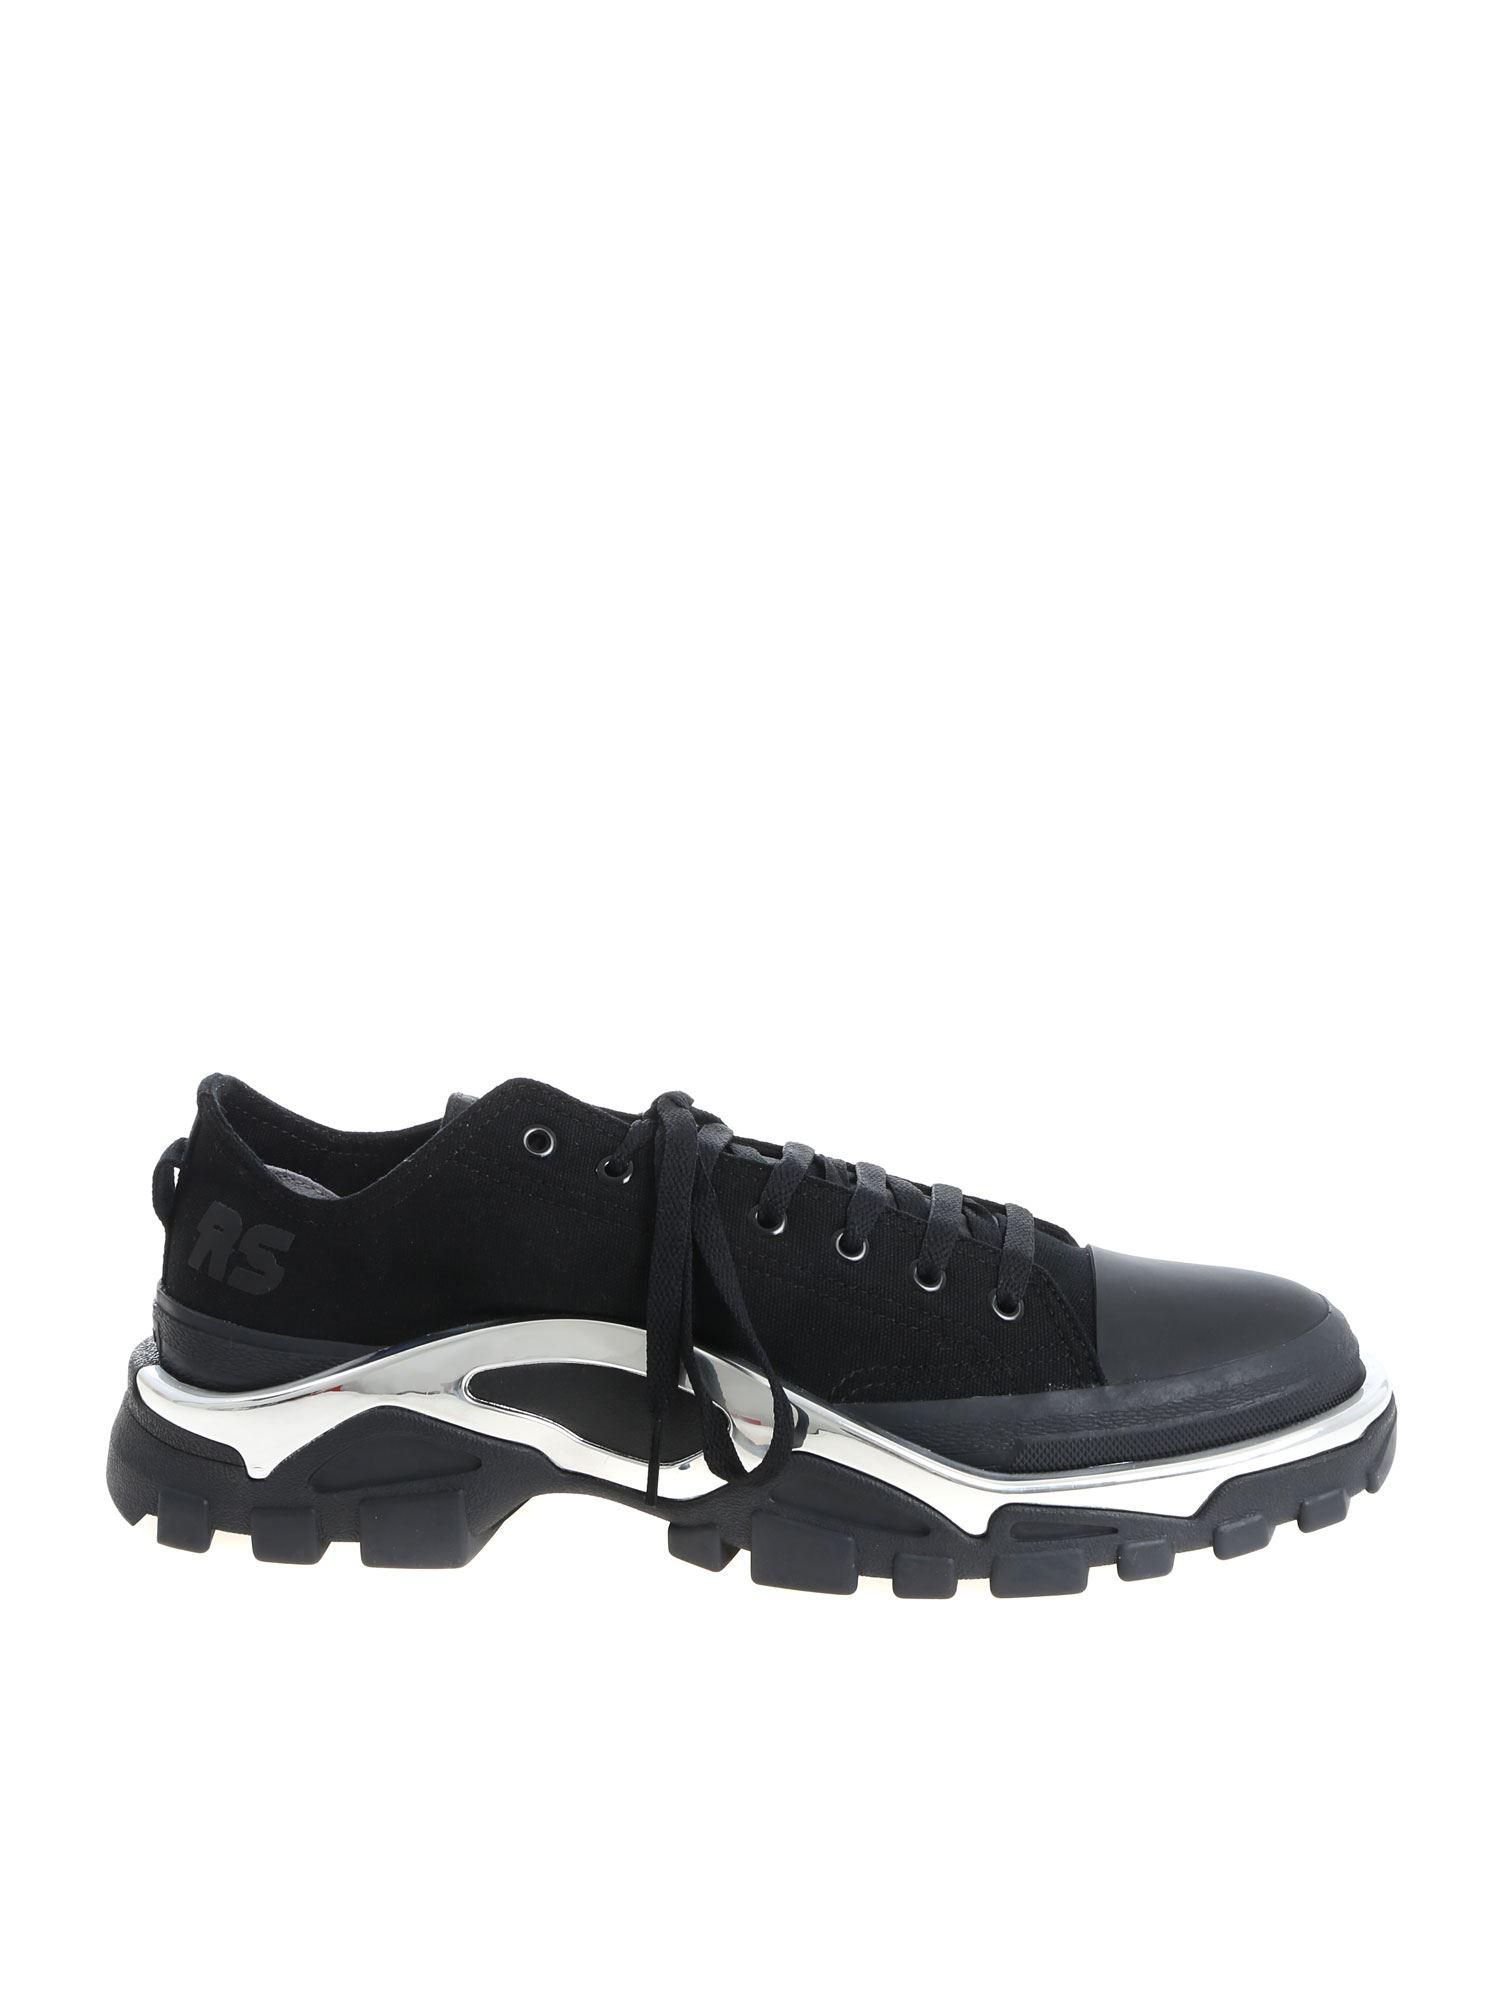 on sale cbd3f 272f2 adidas By Raf Simons. Mens